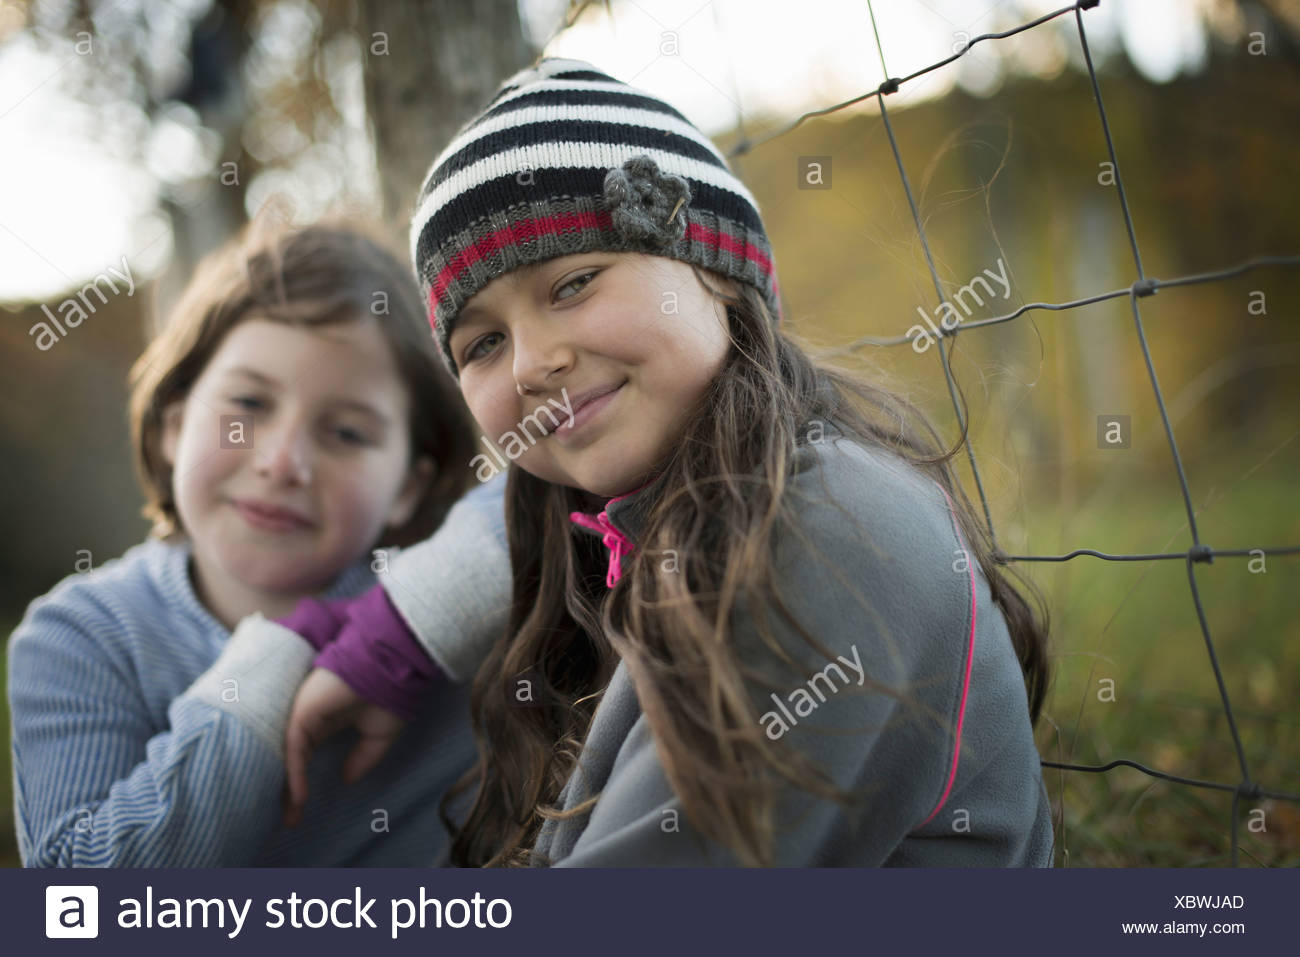 Two young girls side by side outdoors on a farm Leaning on a fence post - Stock Image